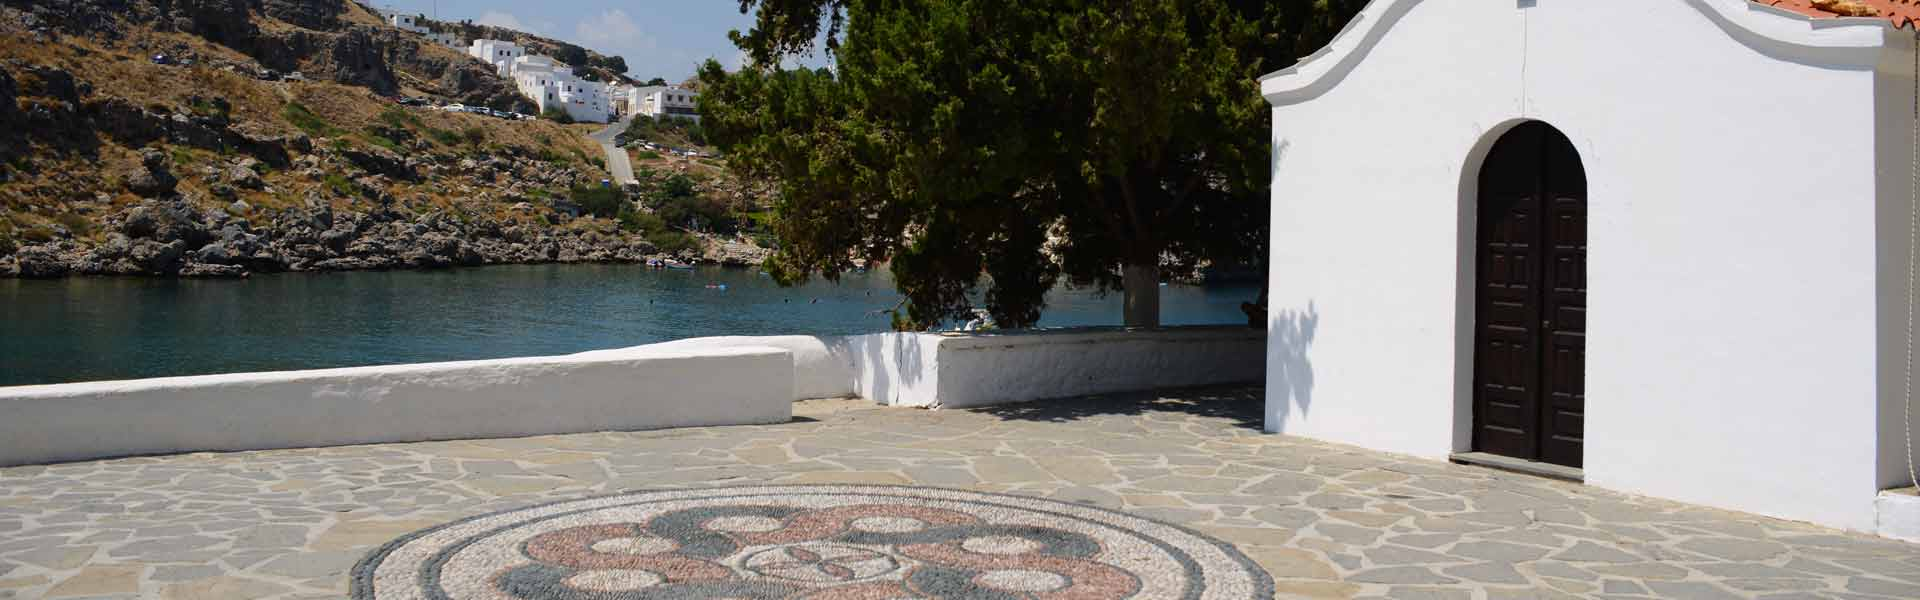 lindos weddings header bespoke travel greece